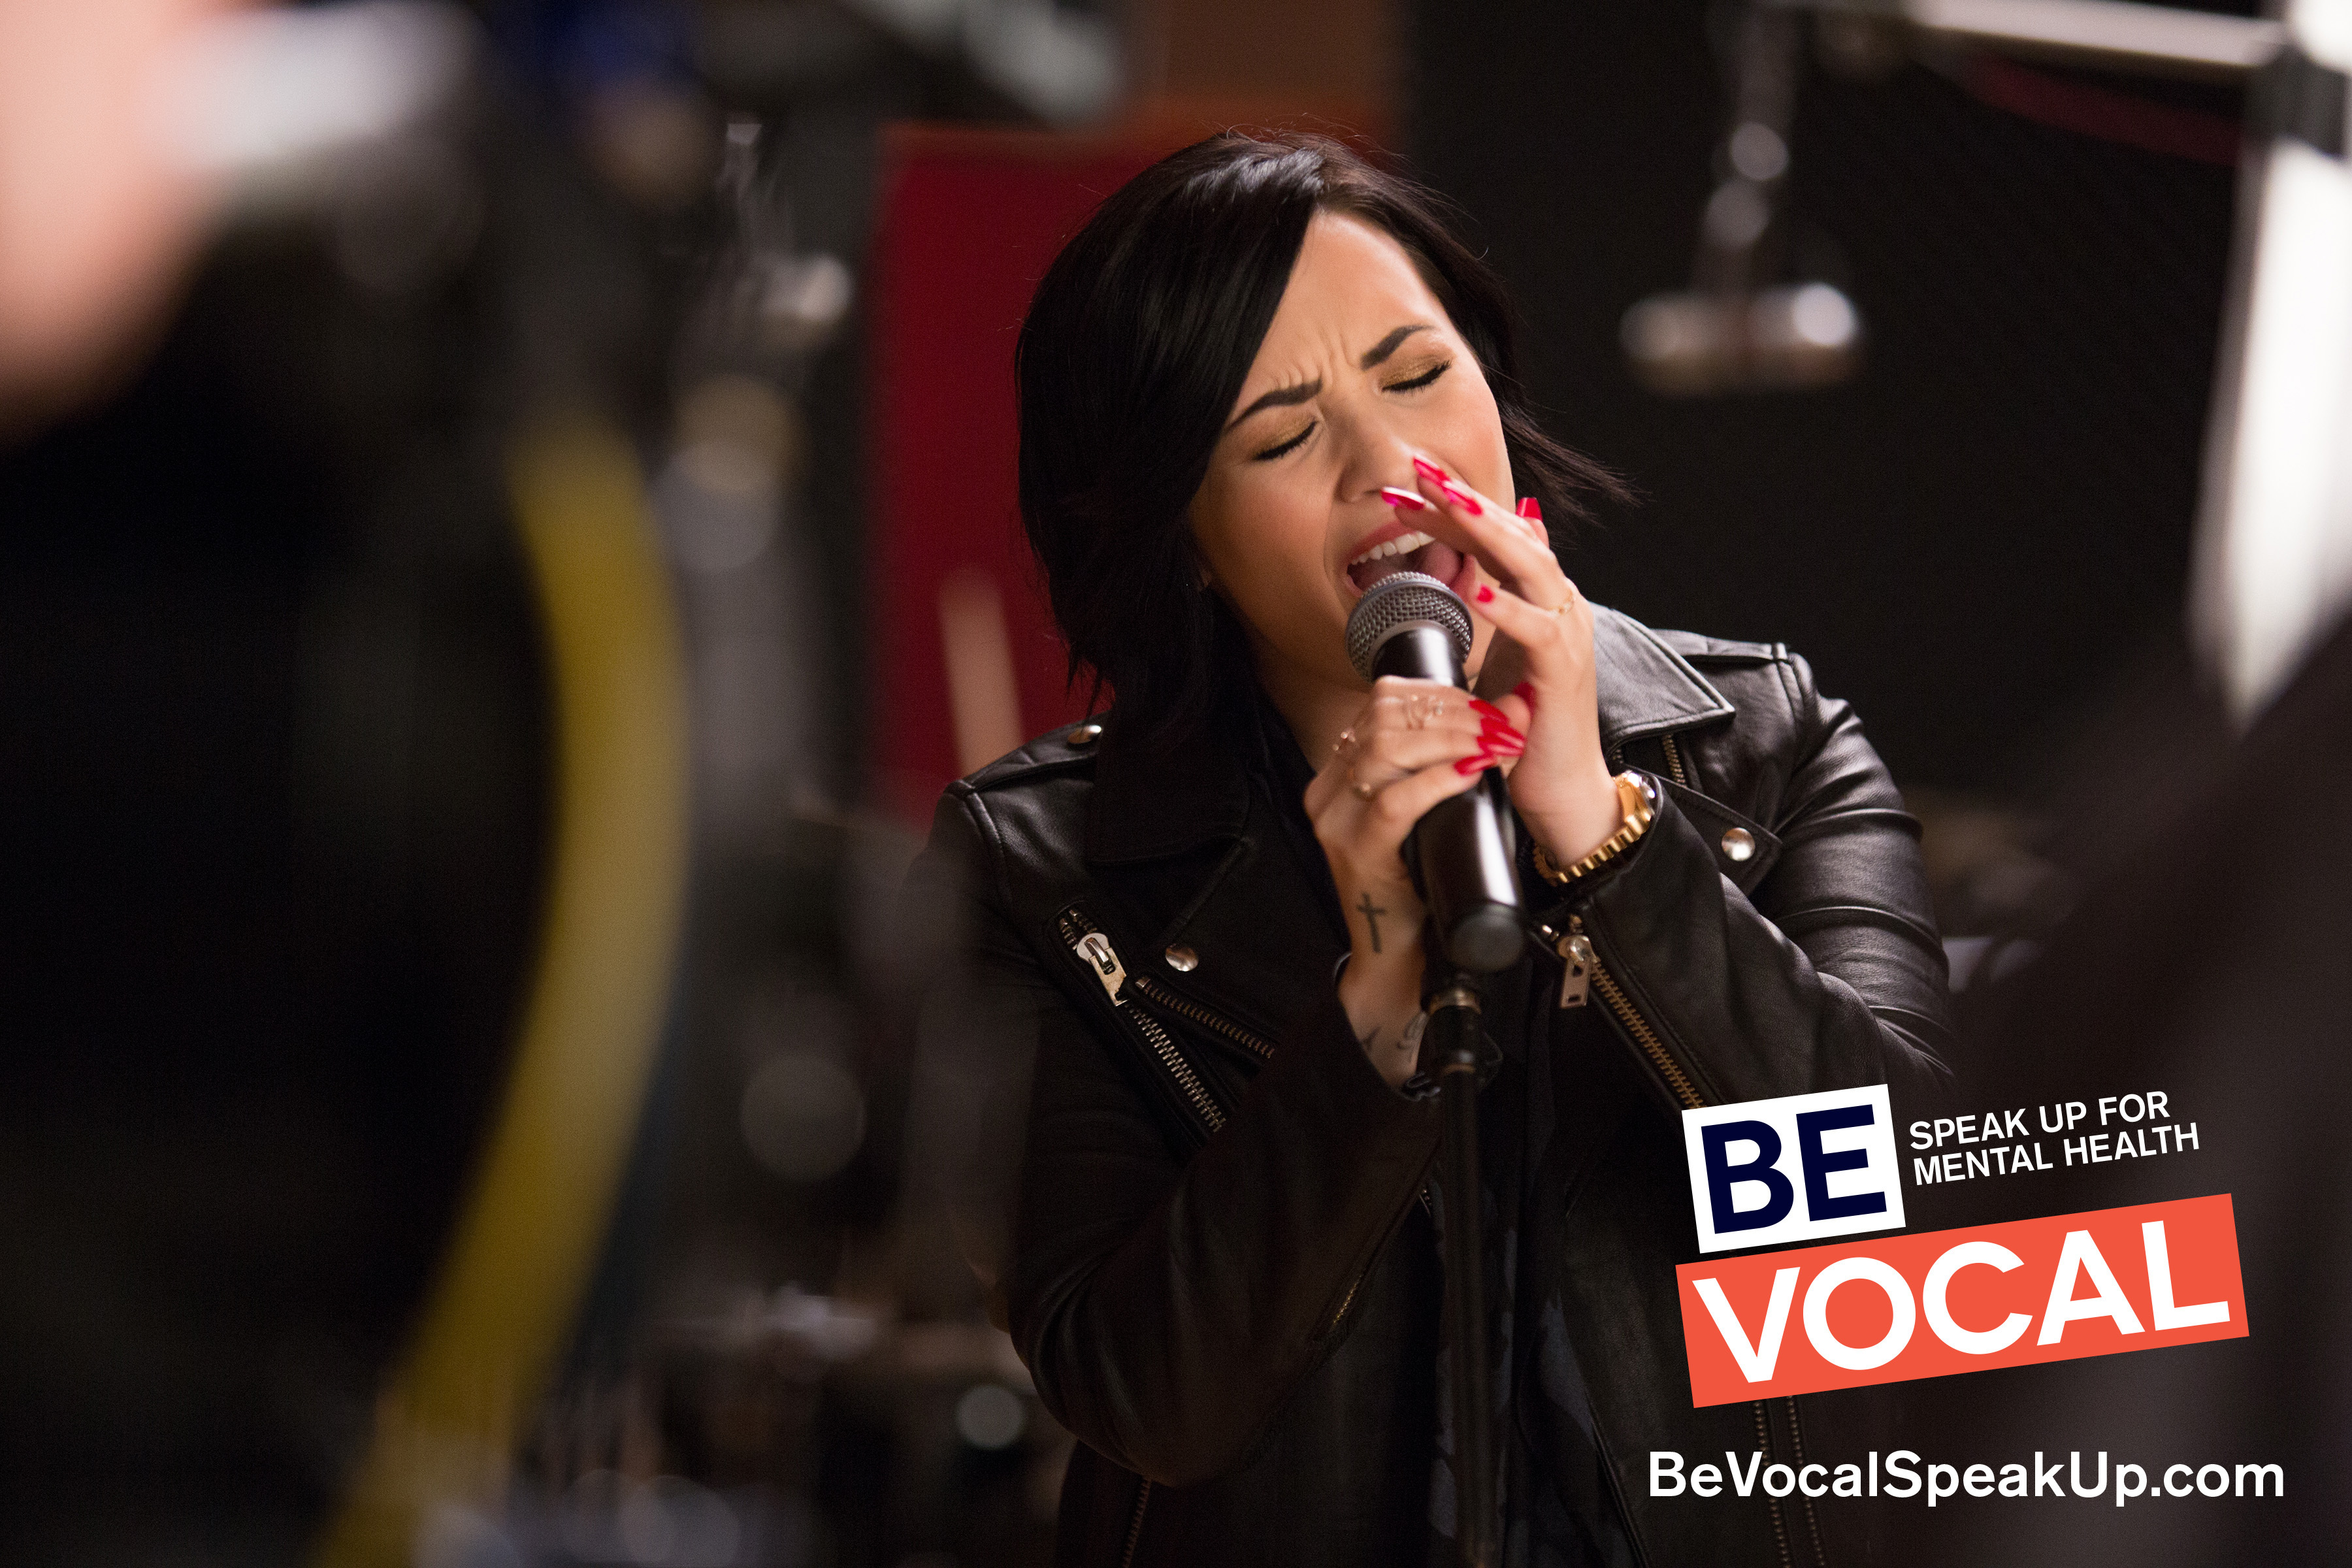 Demi Lovato Sunovion And Leading Advocacy Organizations Call On Americans To Join Be Vocal Initiative By Speaking Up For Mental Health Business Wire